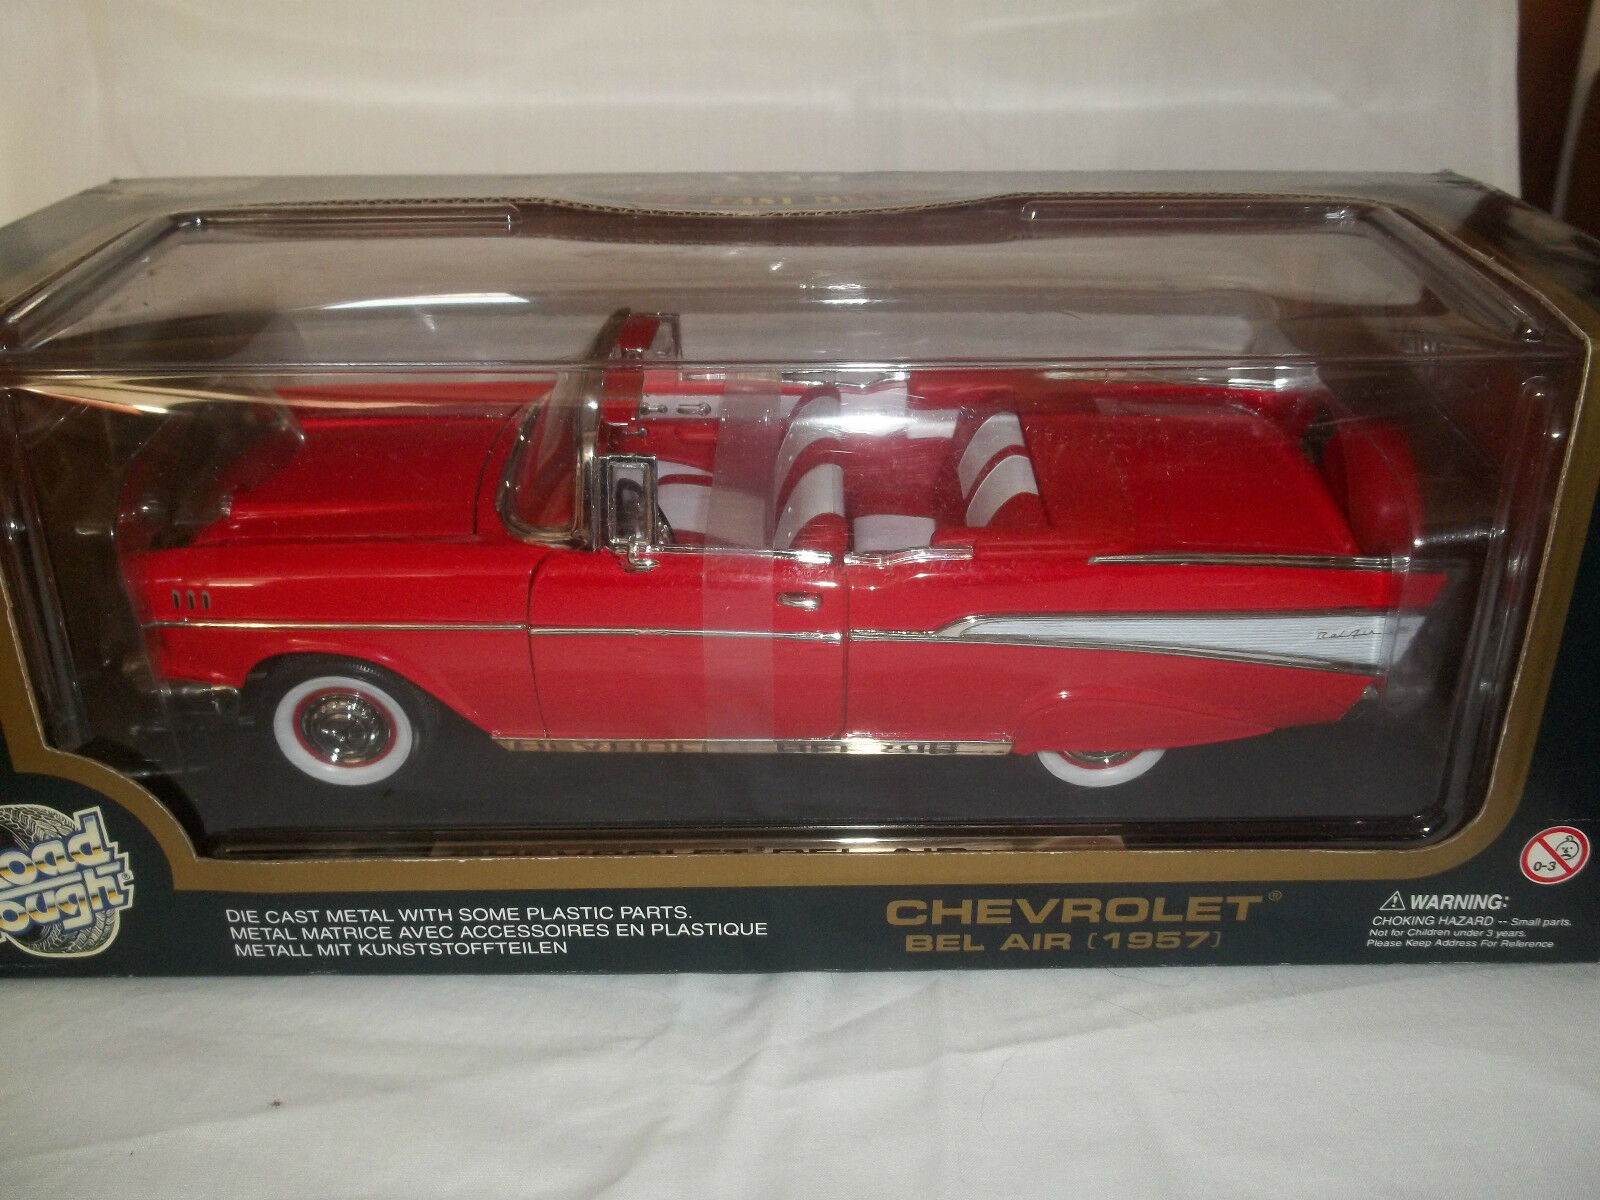 Road Tough 92108 Chevrolet Bel Air rot 1957 1 18 Mint & Boxed